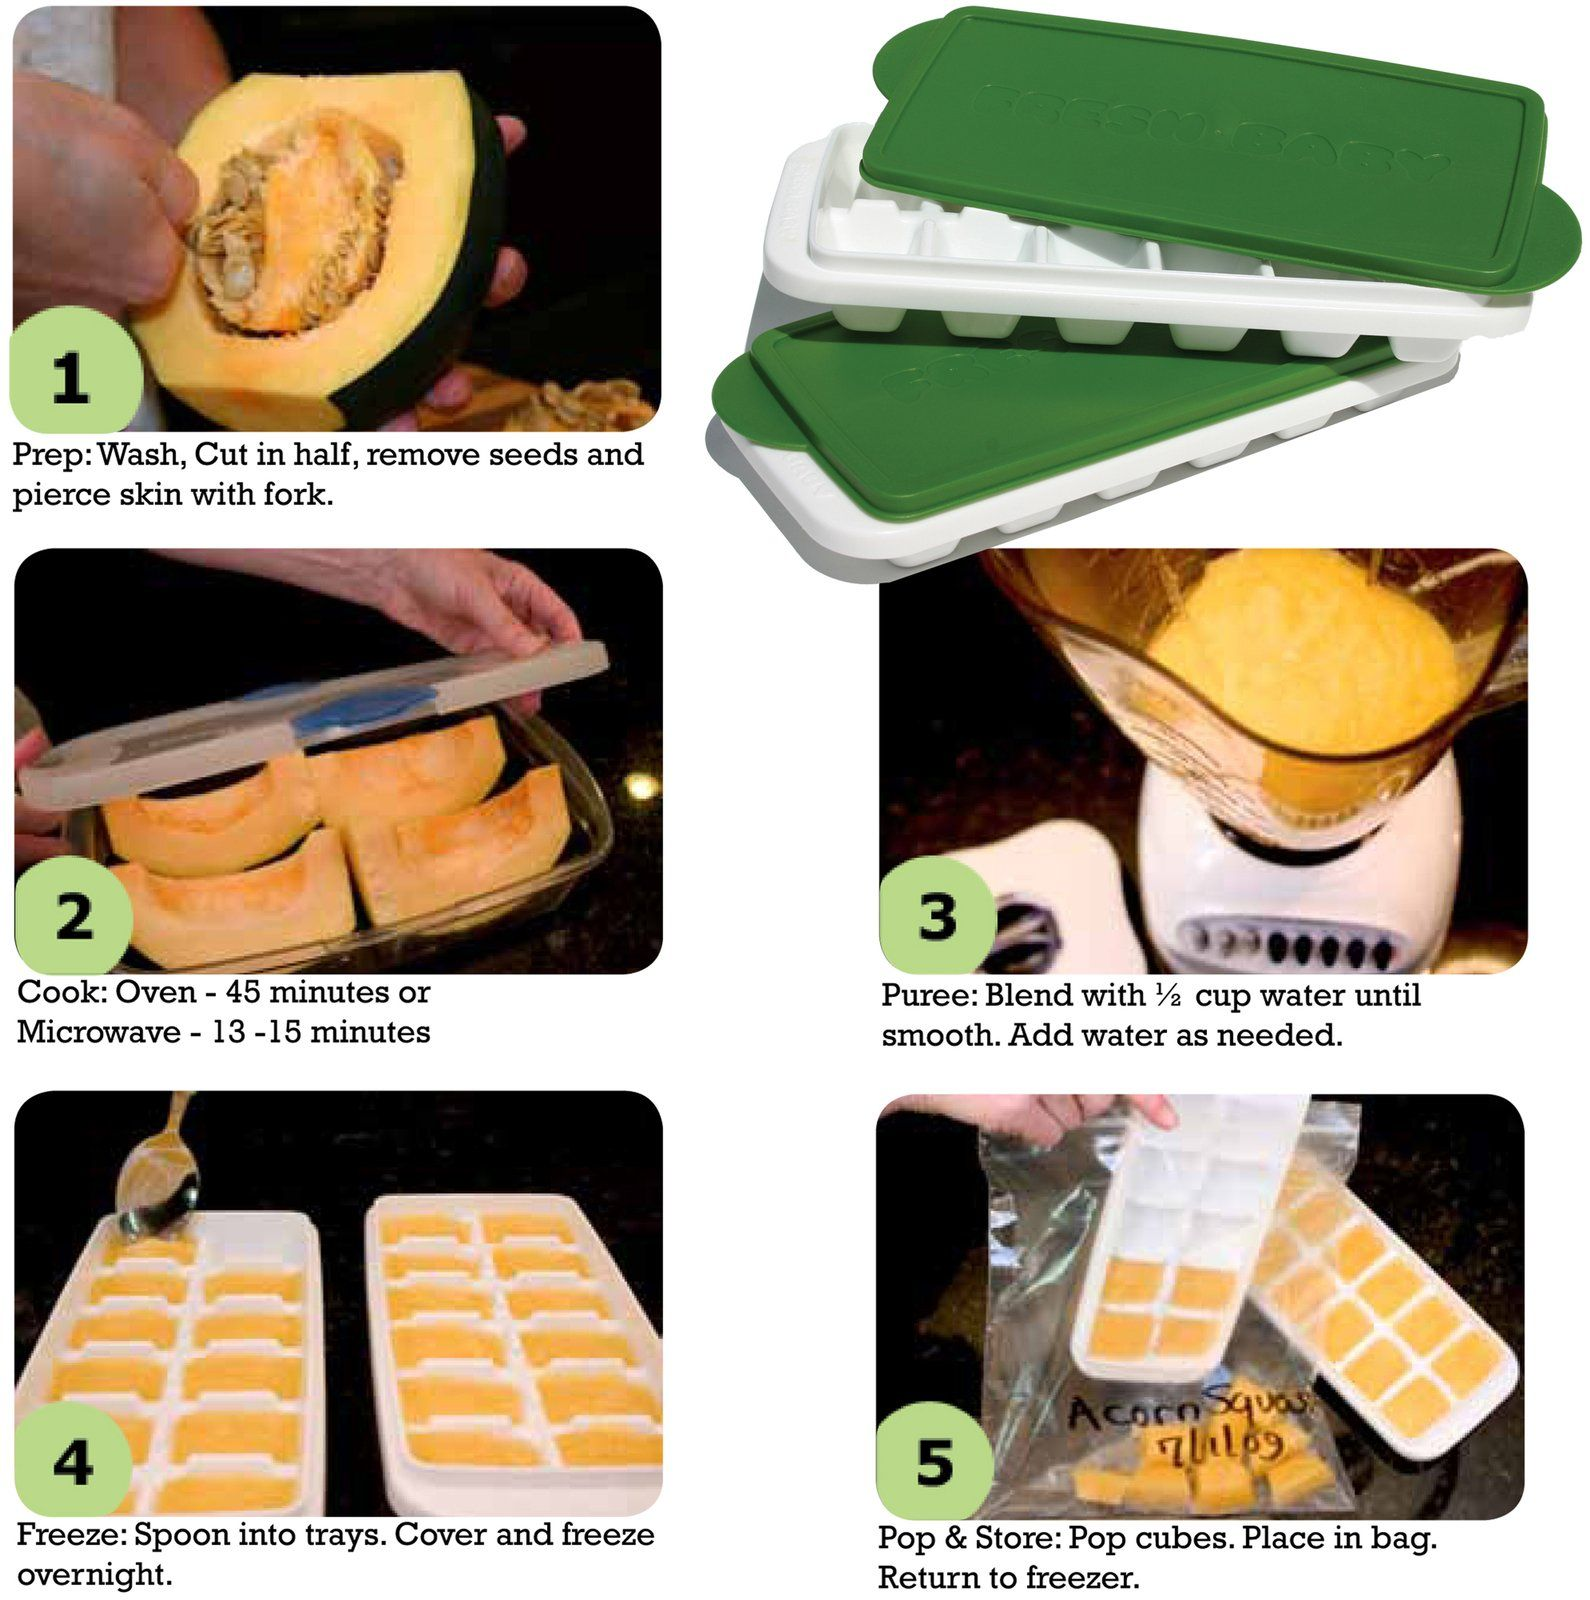 Find This Pin And More On Homemade Baby Food By Angmommy4